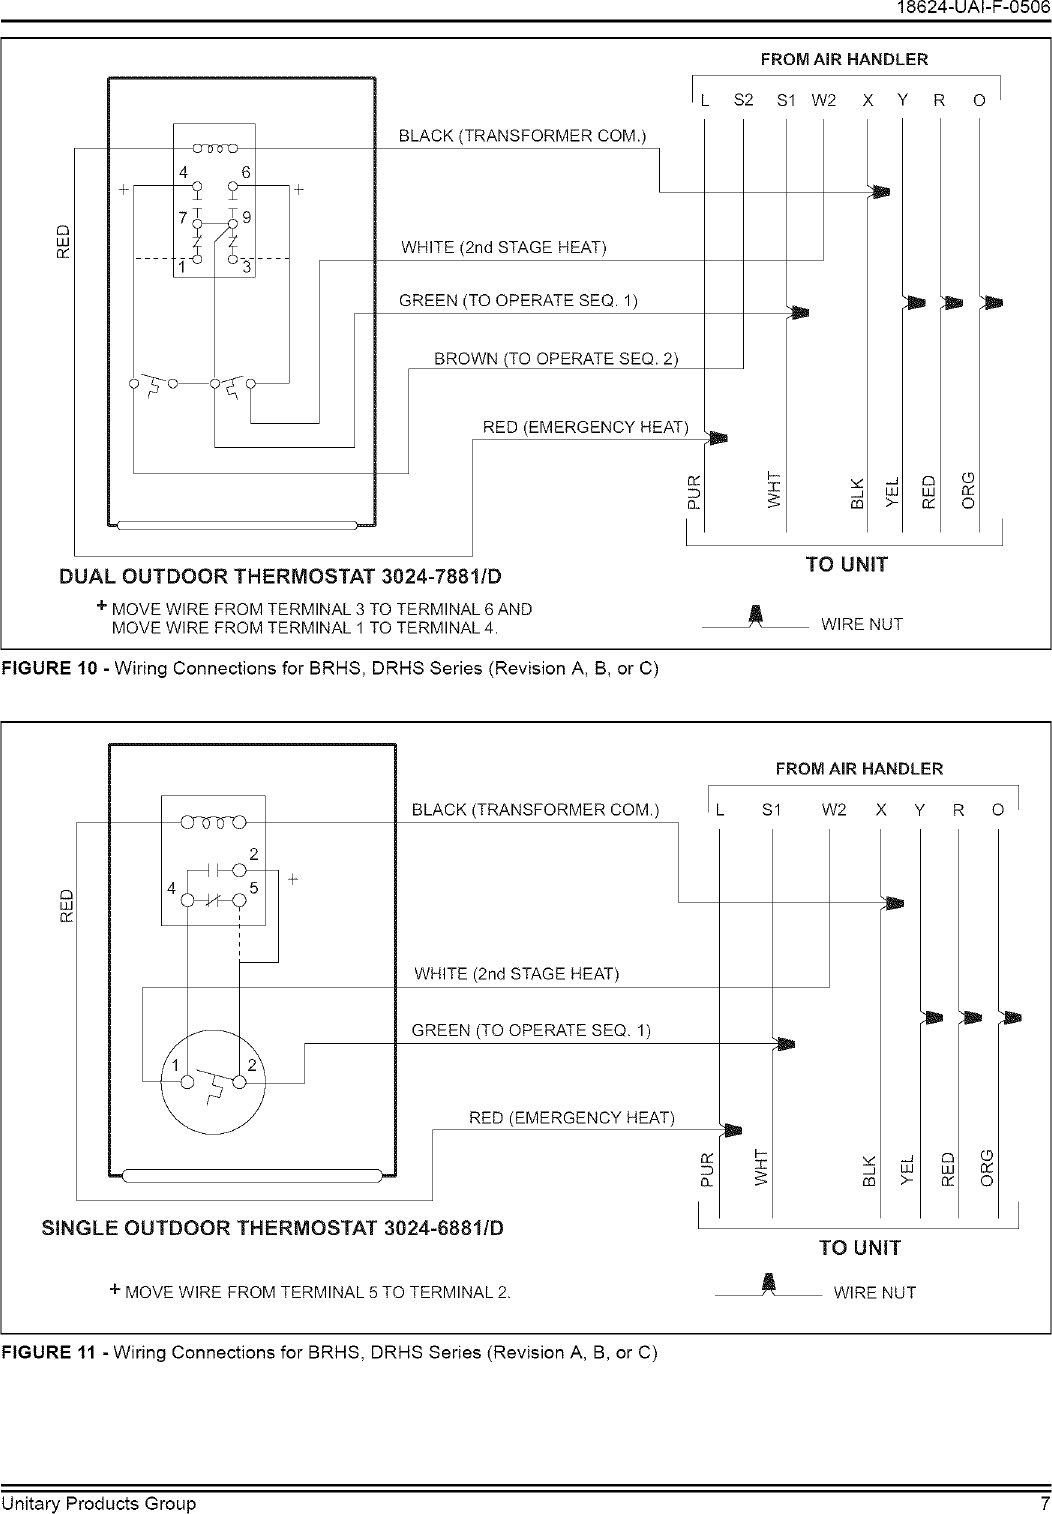 Coleman Evcon Ind Controls And Hvac Accessories Manual L0612129 Outdoor Thermostat Wiring Diagram Page 7 Of 12